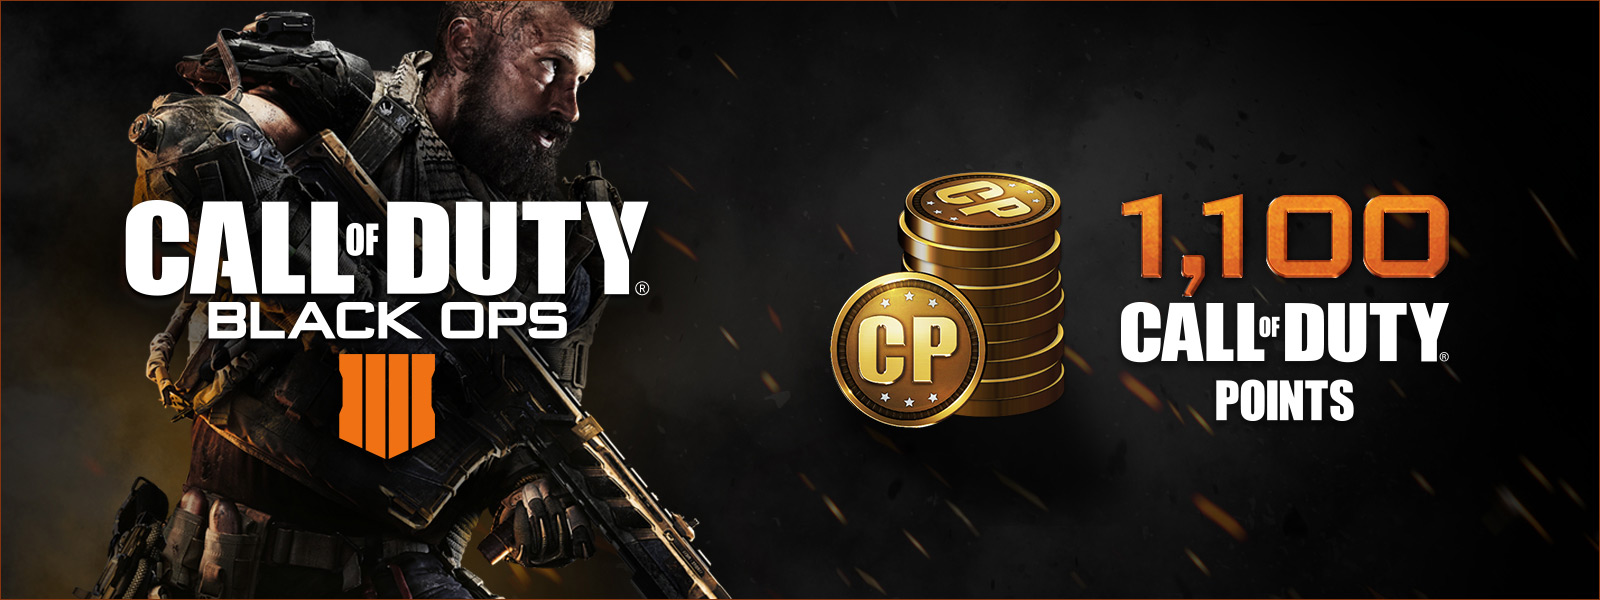 Call of Duty: Black Ops 4 logo next to coins with the letters CP on them that represents 1,100 Call of Duty Points